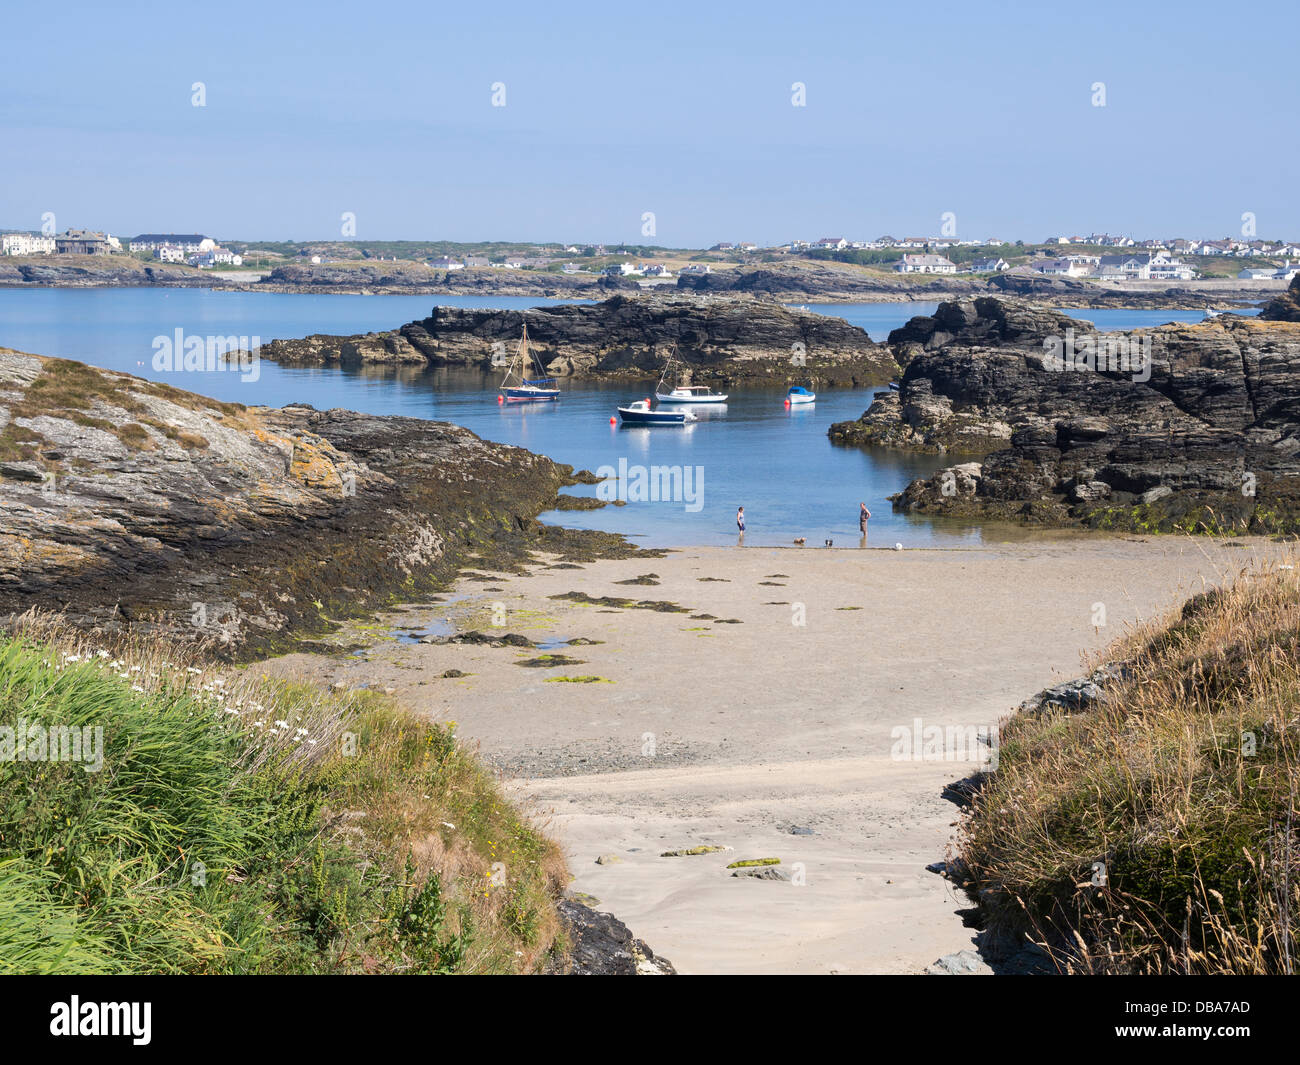 Coastline and coast scene at low tide in summer with boats moored in Porth Diana, Trearddur Bay, Holy Island, Isle - Stock Image